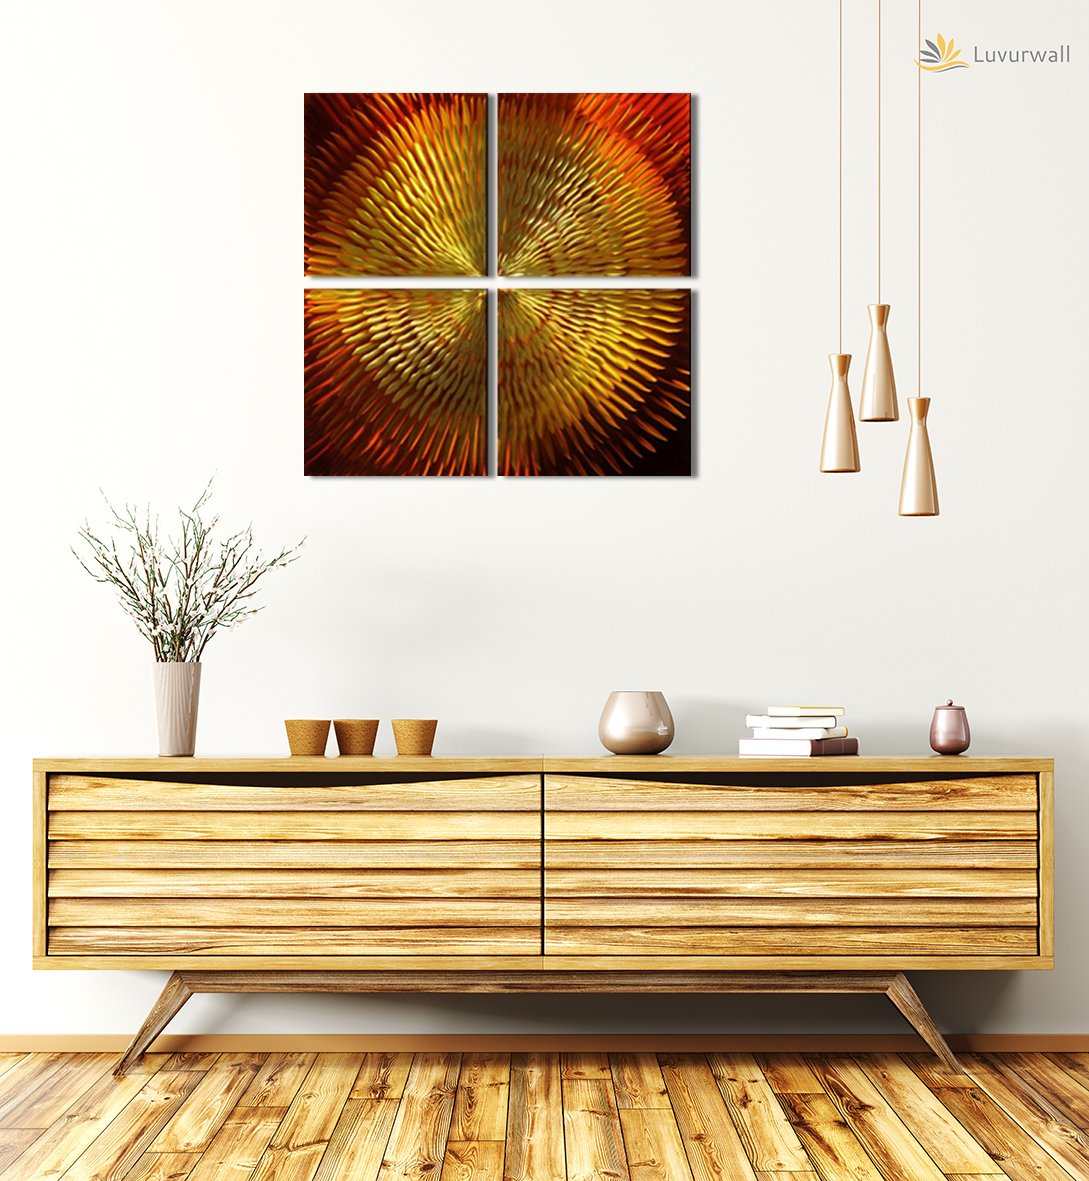 Luvurwall 4 Panel Shining Sun Metal Wall Art, Metal Wall Art - Luvurwall